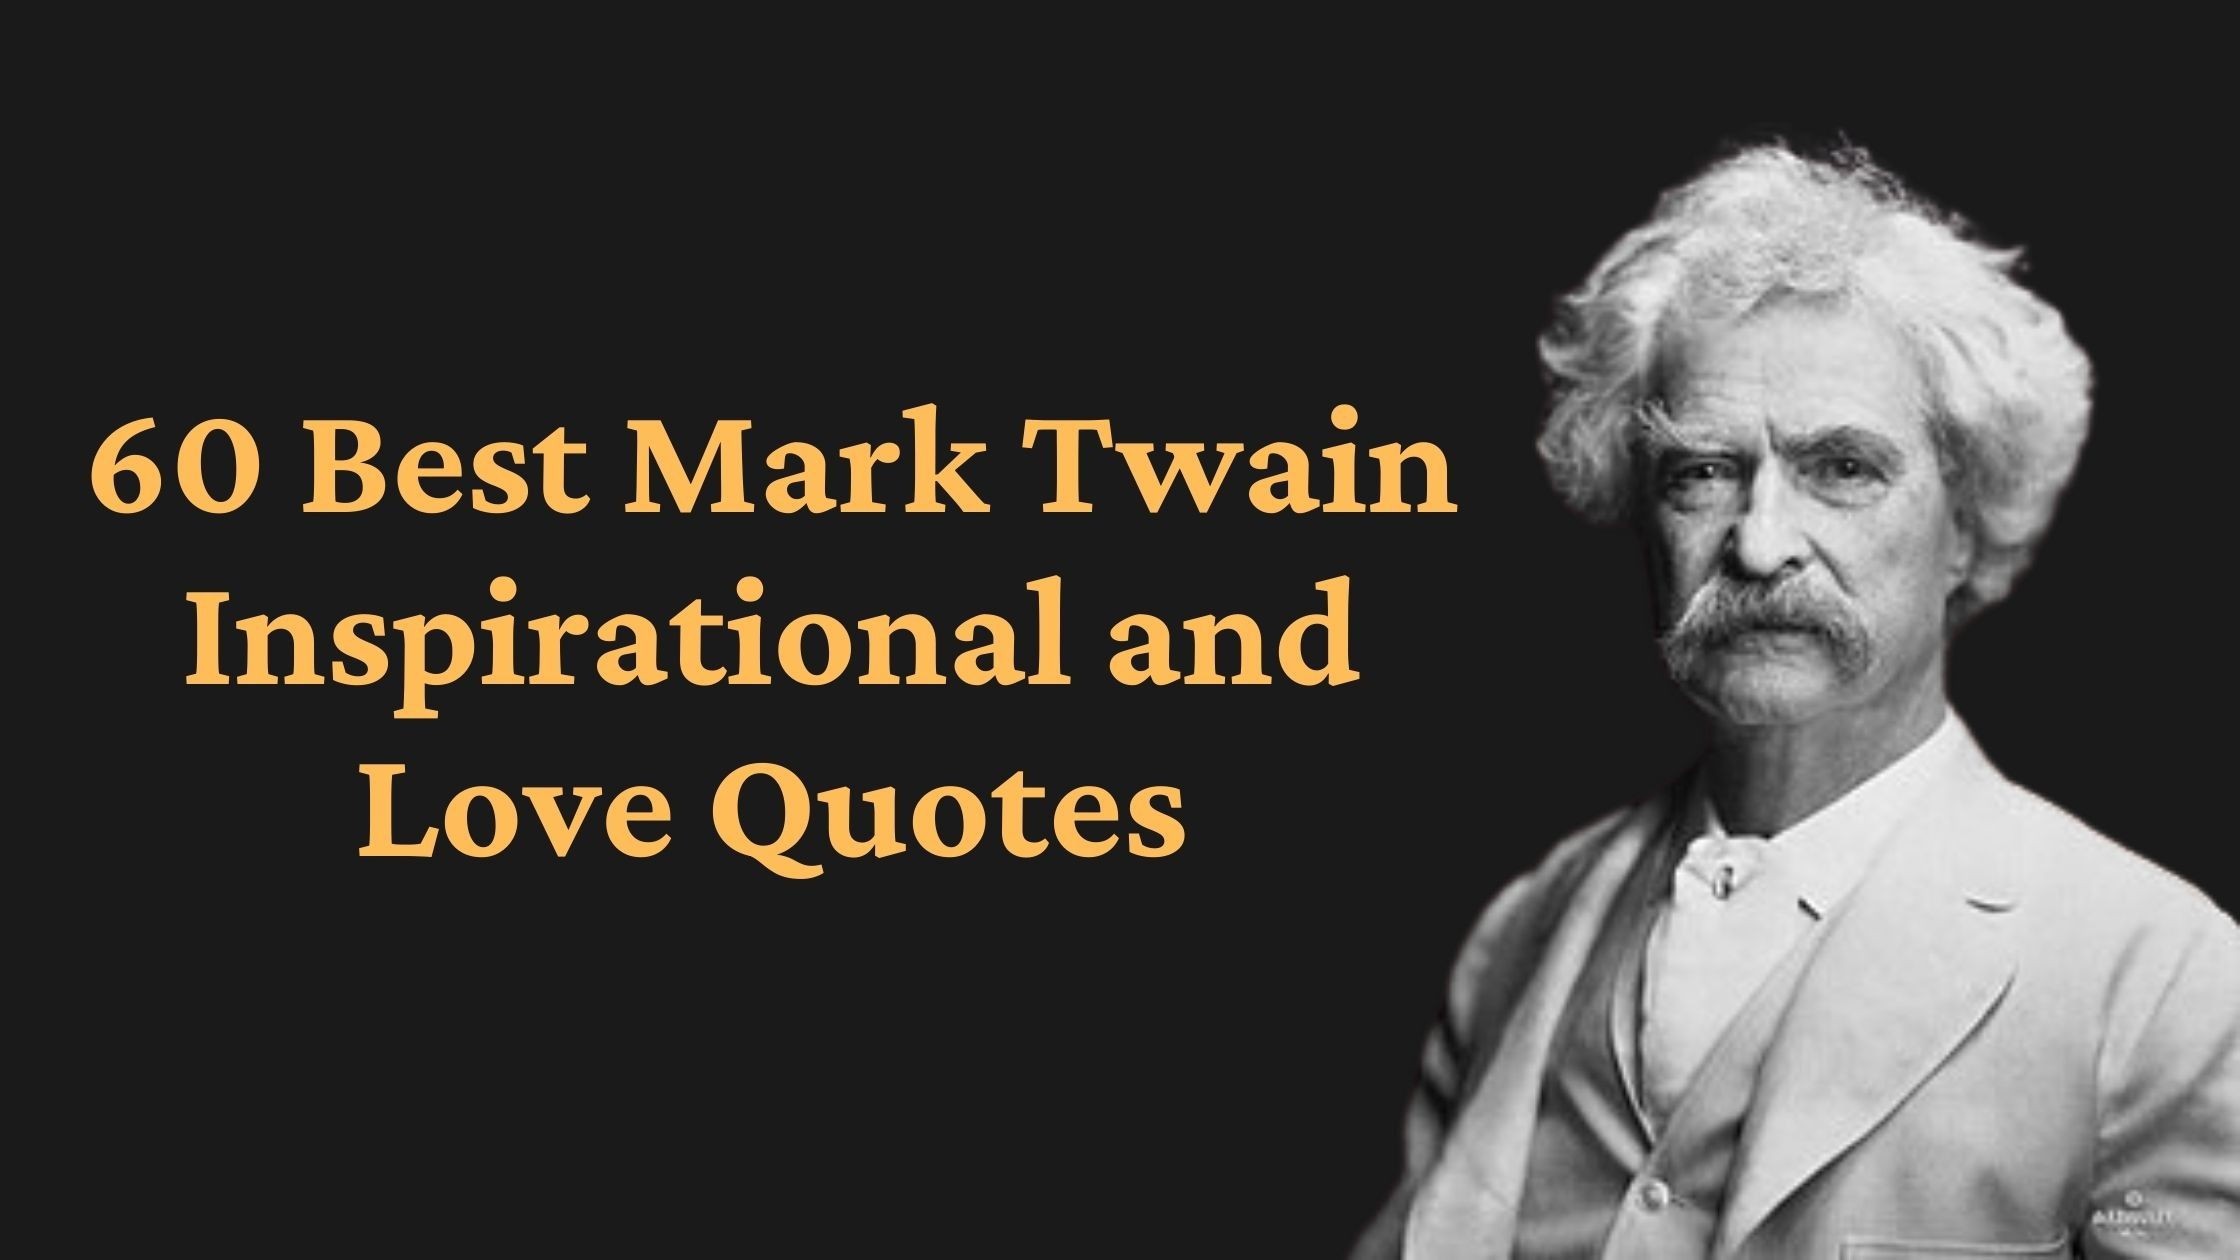 Best Mark Twain Inspirational and Love Quotes